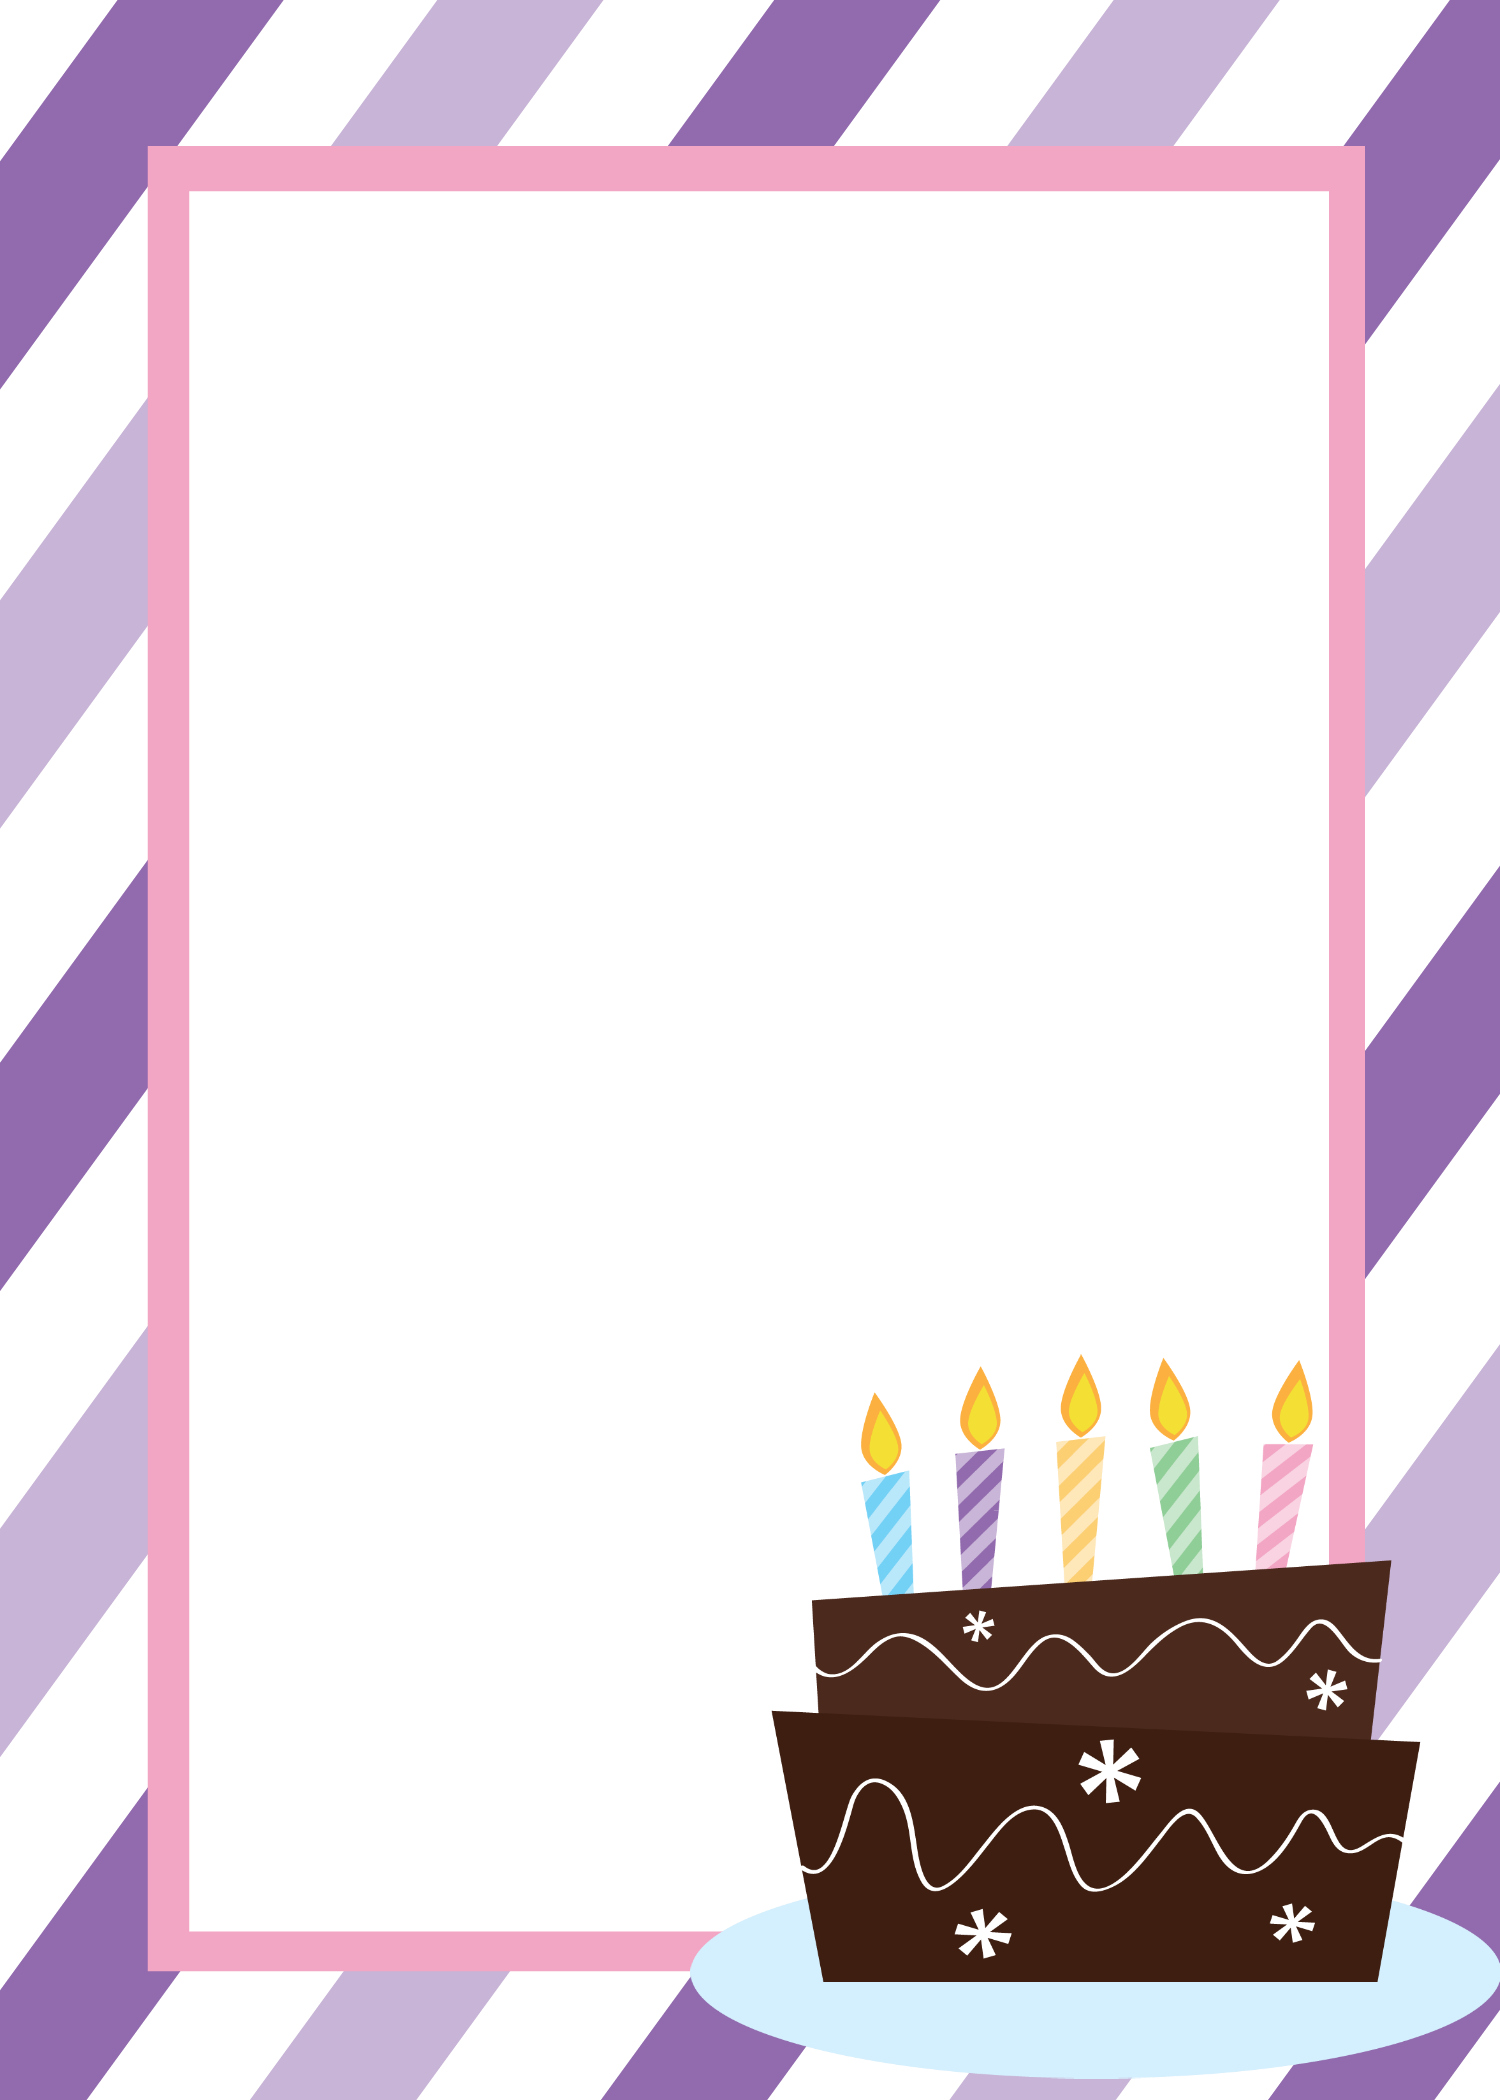 free printable birthday invitation templates - Free Birthday Templates